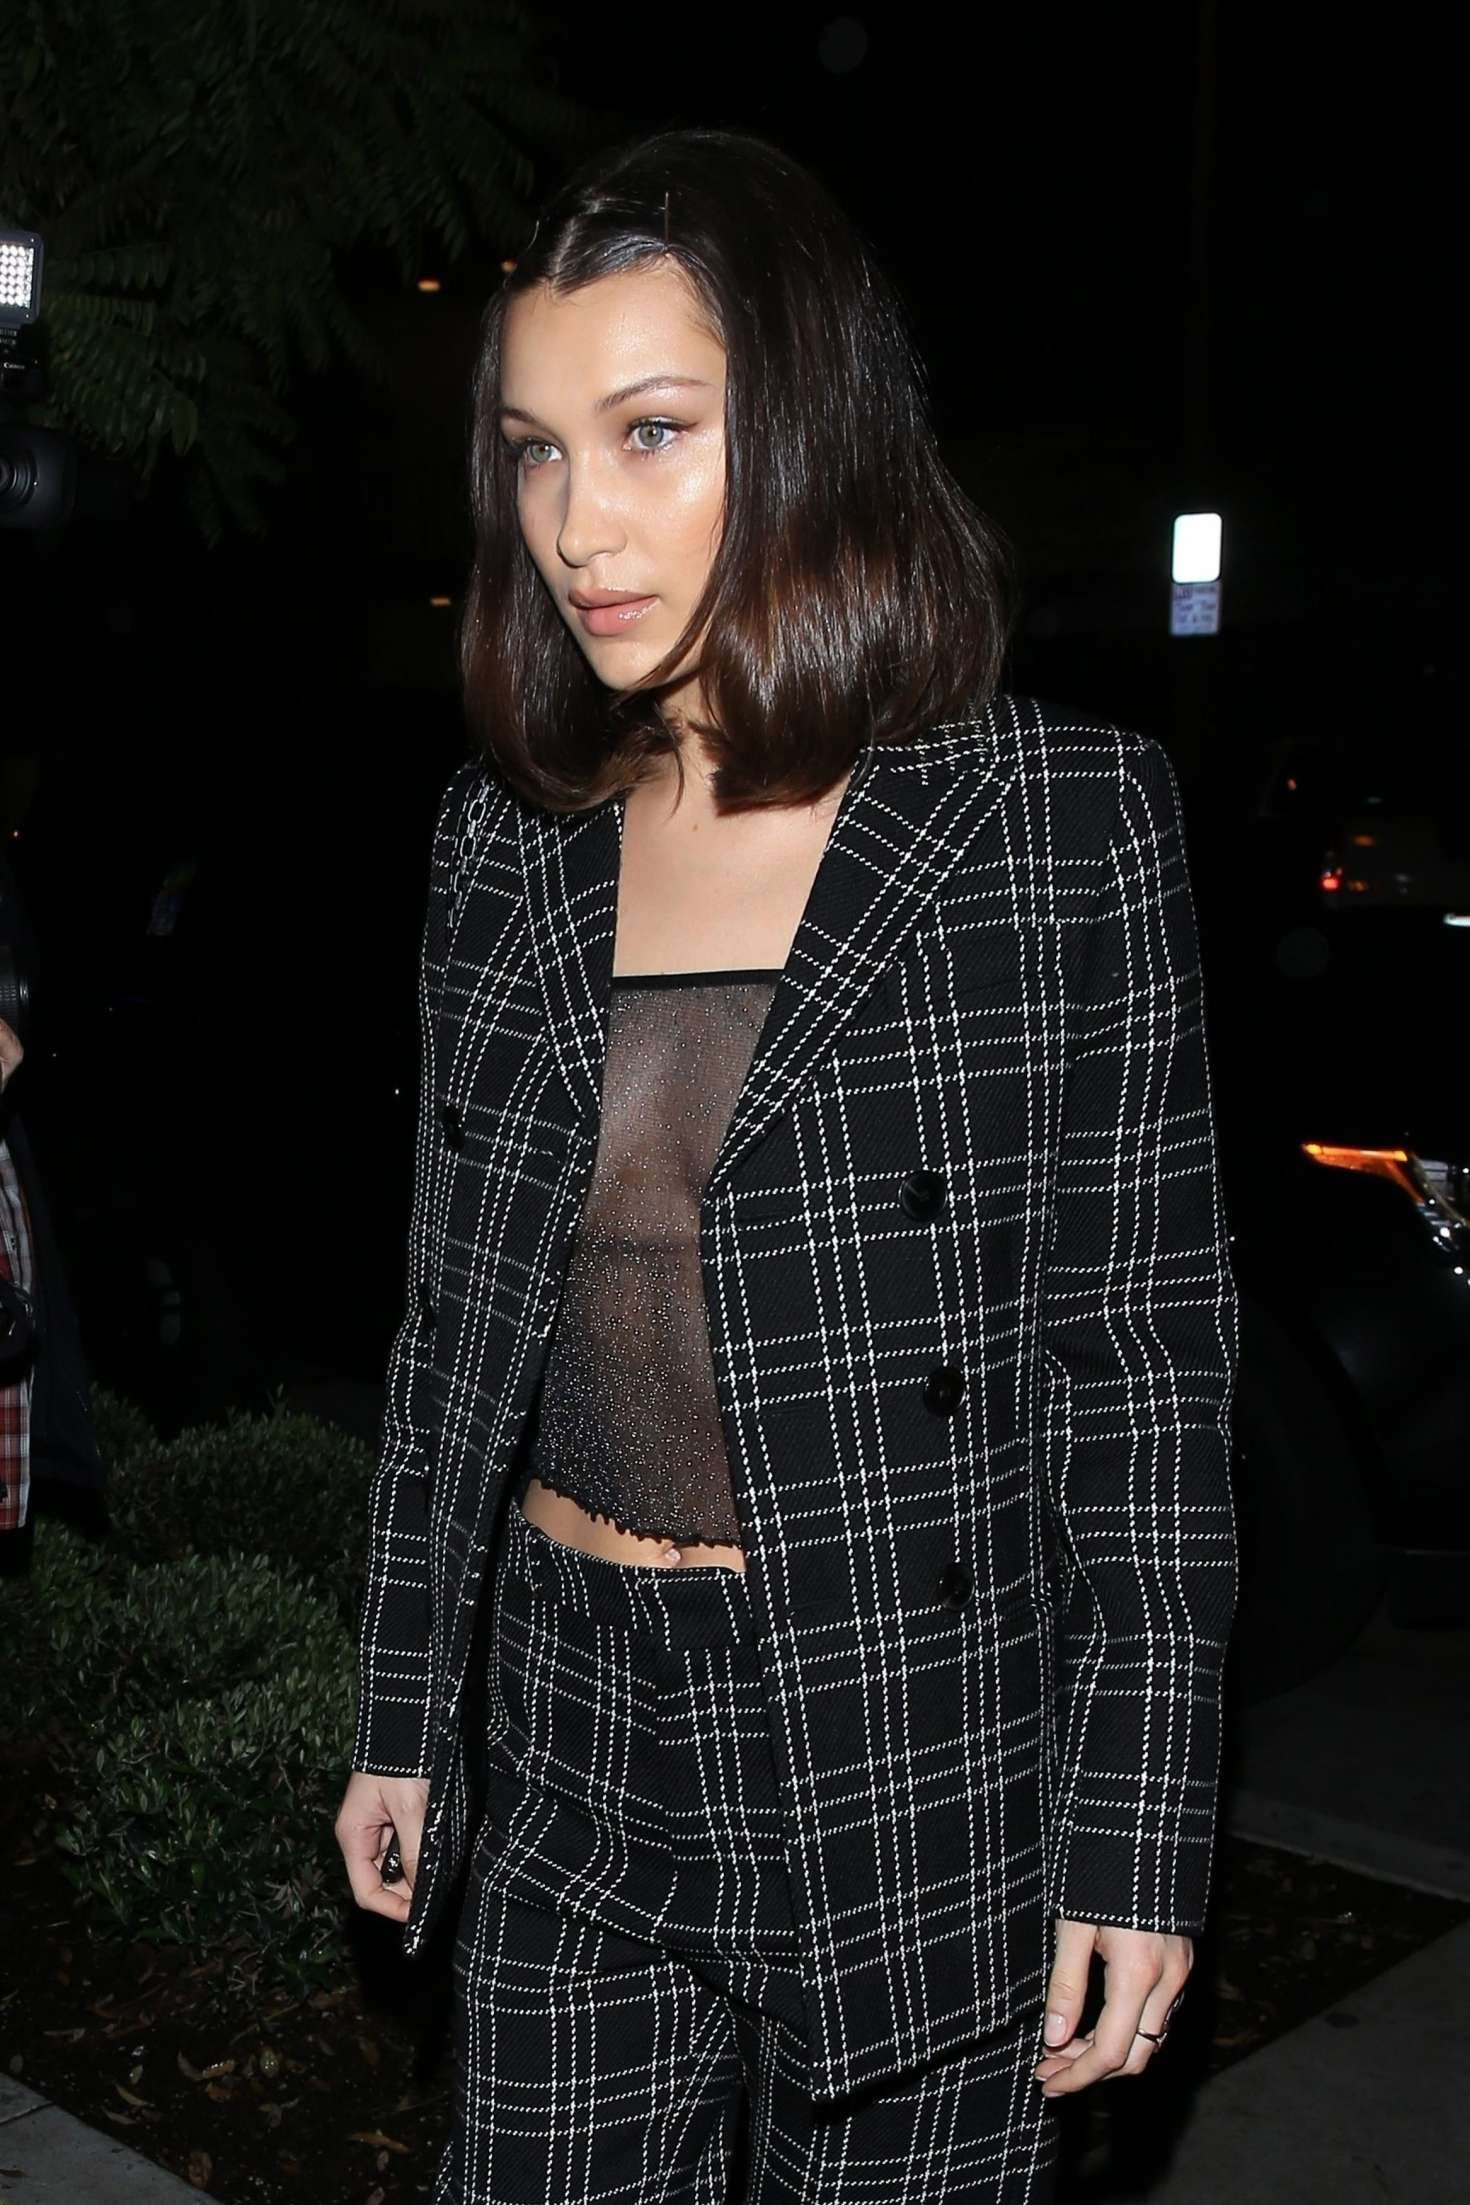 Bella Hadid – Arriving at 'Gracias Madre' Restaurant in West Hollywood